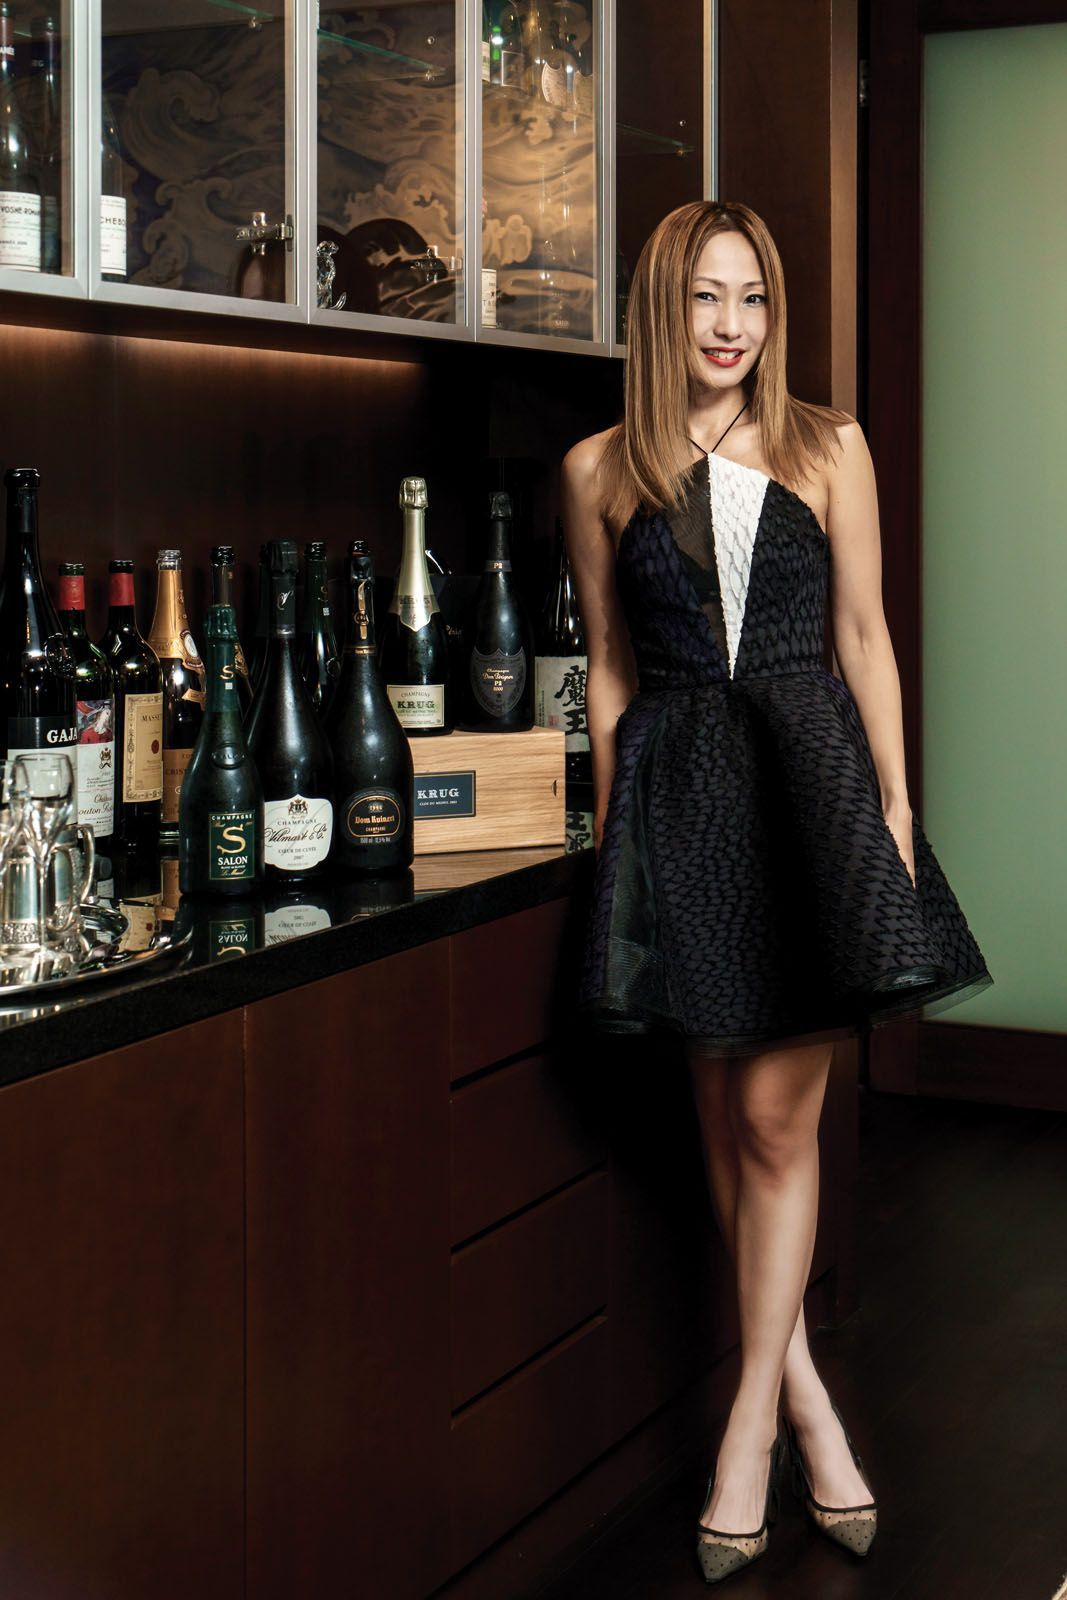 Watch: A Closer Look At Lawyer Tan Min-Li's Enviable Champagne Collection in 'Remarkable Living', a Singapore Tatler x CNA Luxury TV Series